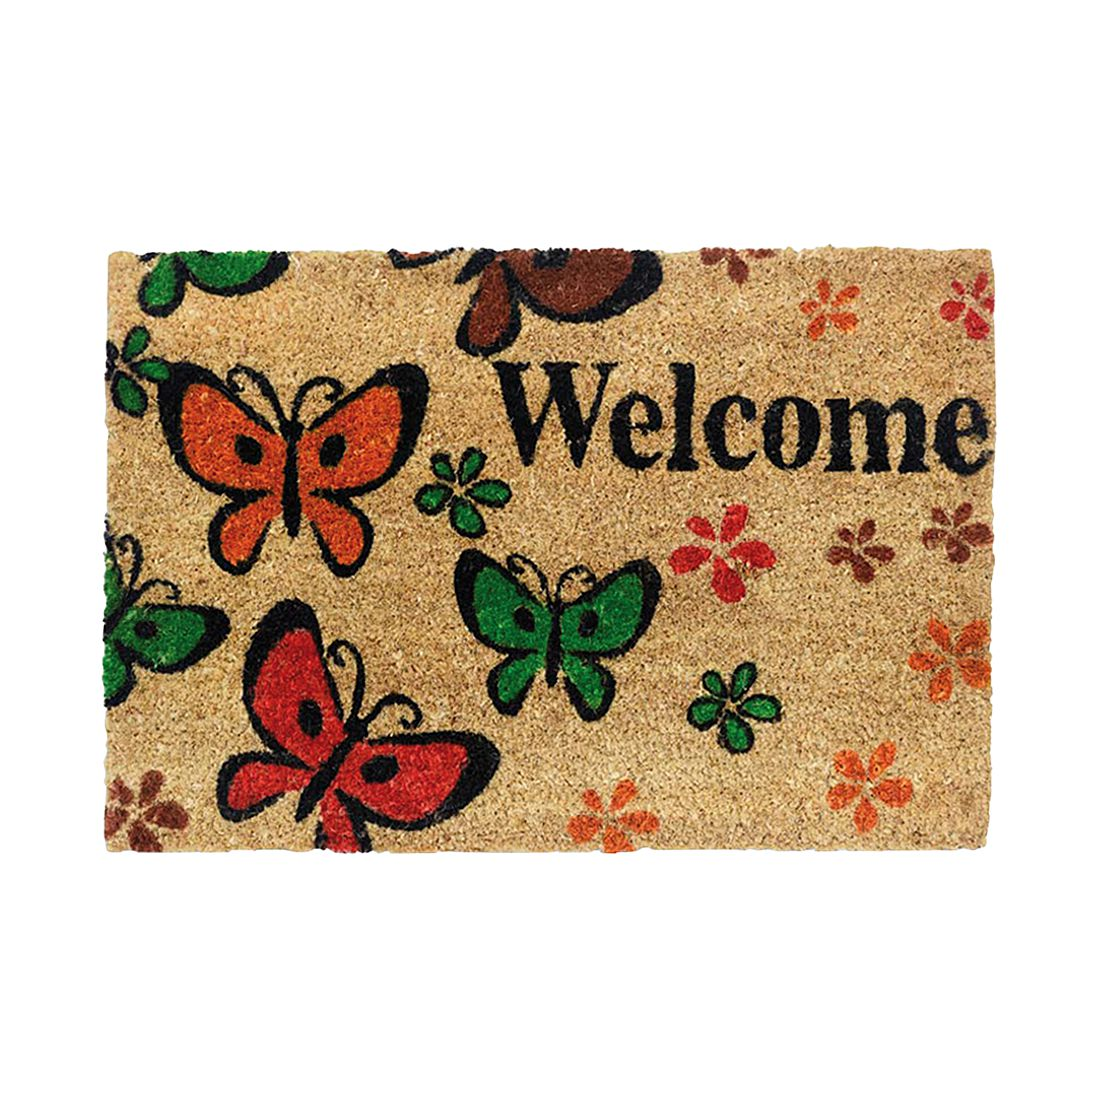 Kokosmatte RUCO Welcome Butterfly - Natur, Siena Home